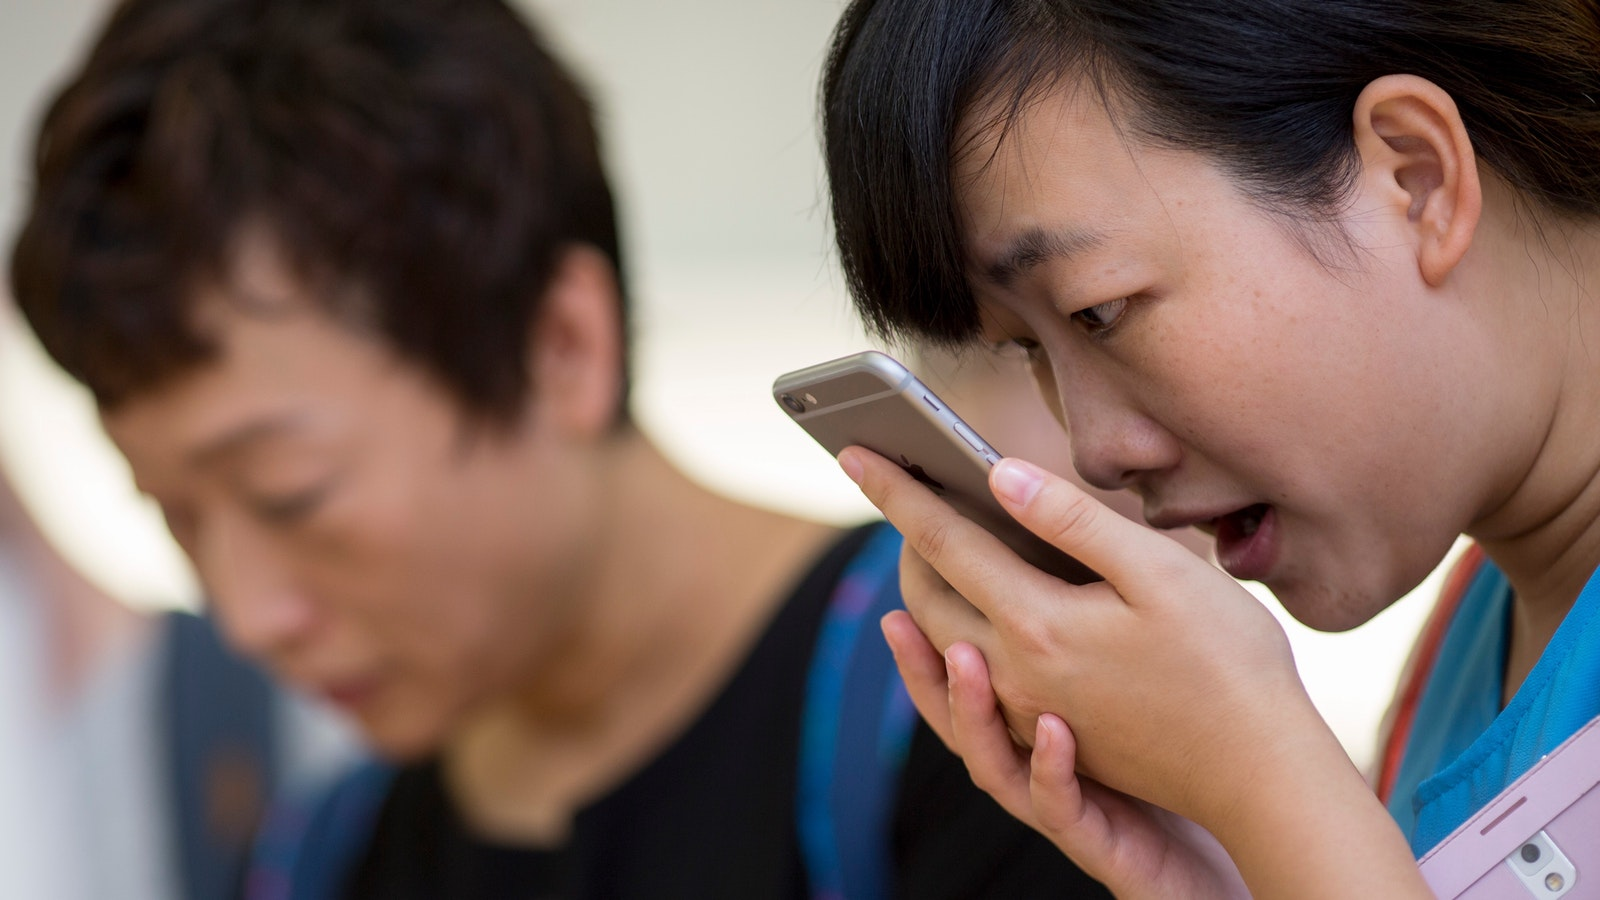 A customer using Apple's Siri feature. Photo by Bloomberg.